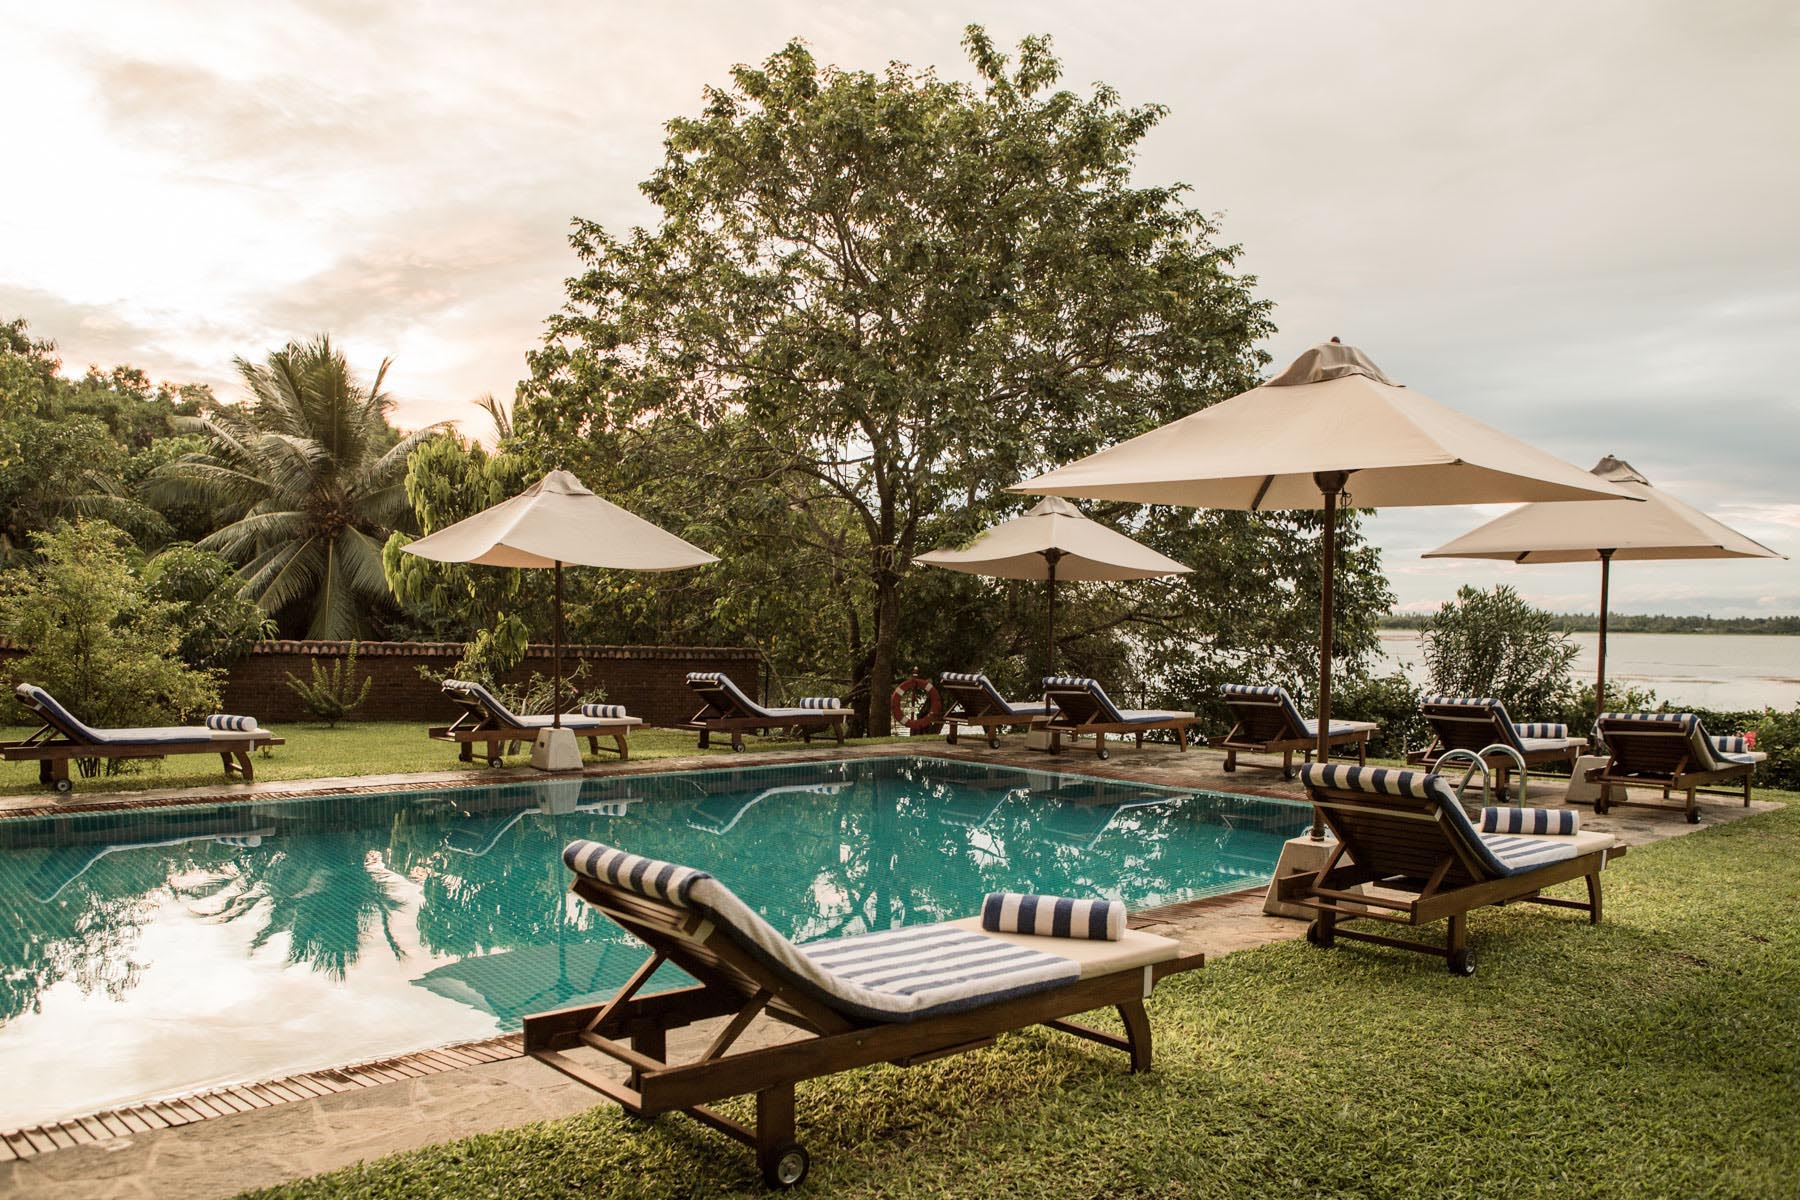 thaulle-resort-sri-lanka-pool-relaxing1